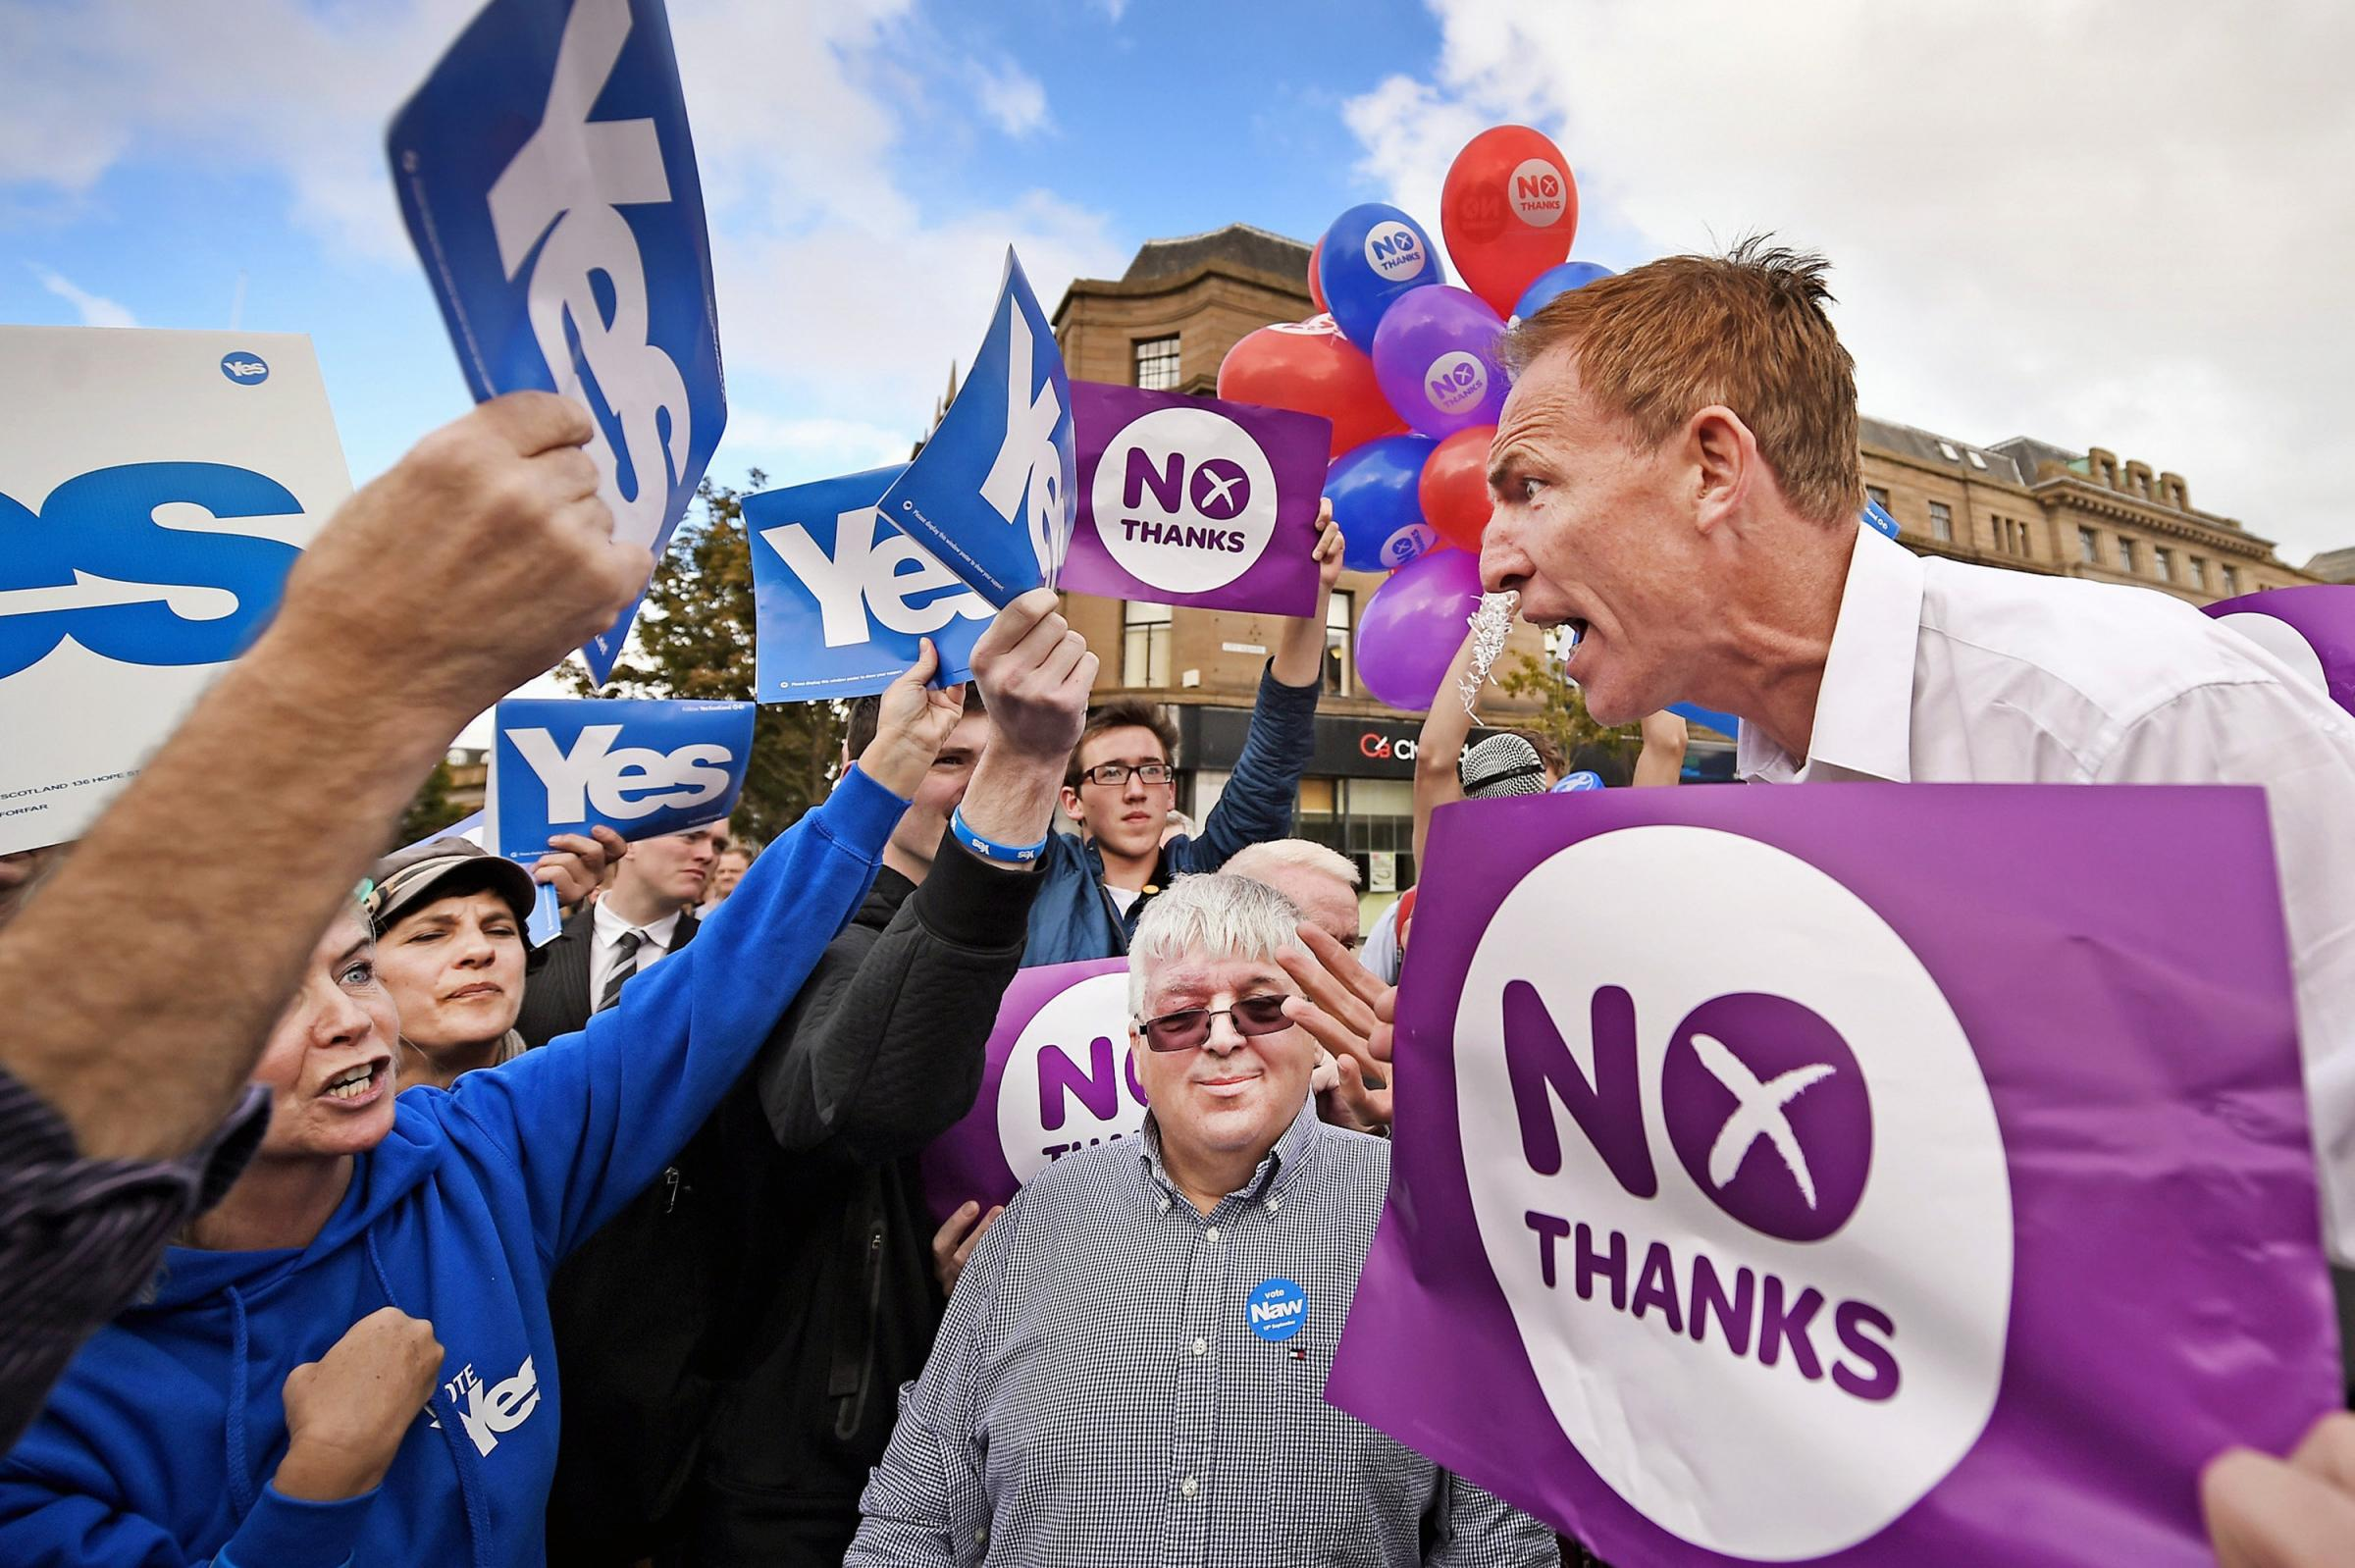 Mike Small: How the argument between Yes and No has fundamentally changed